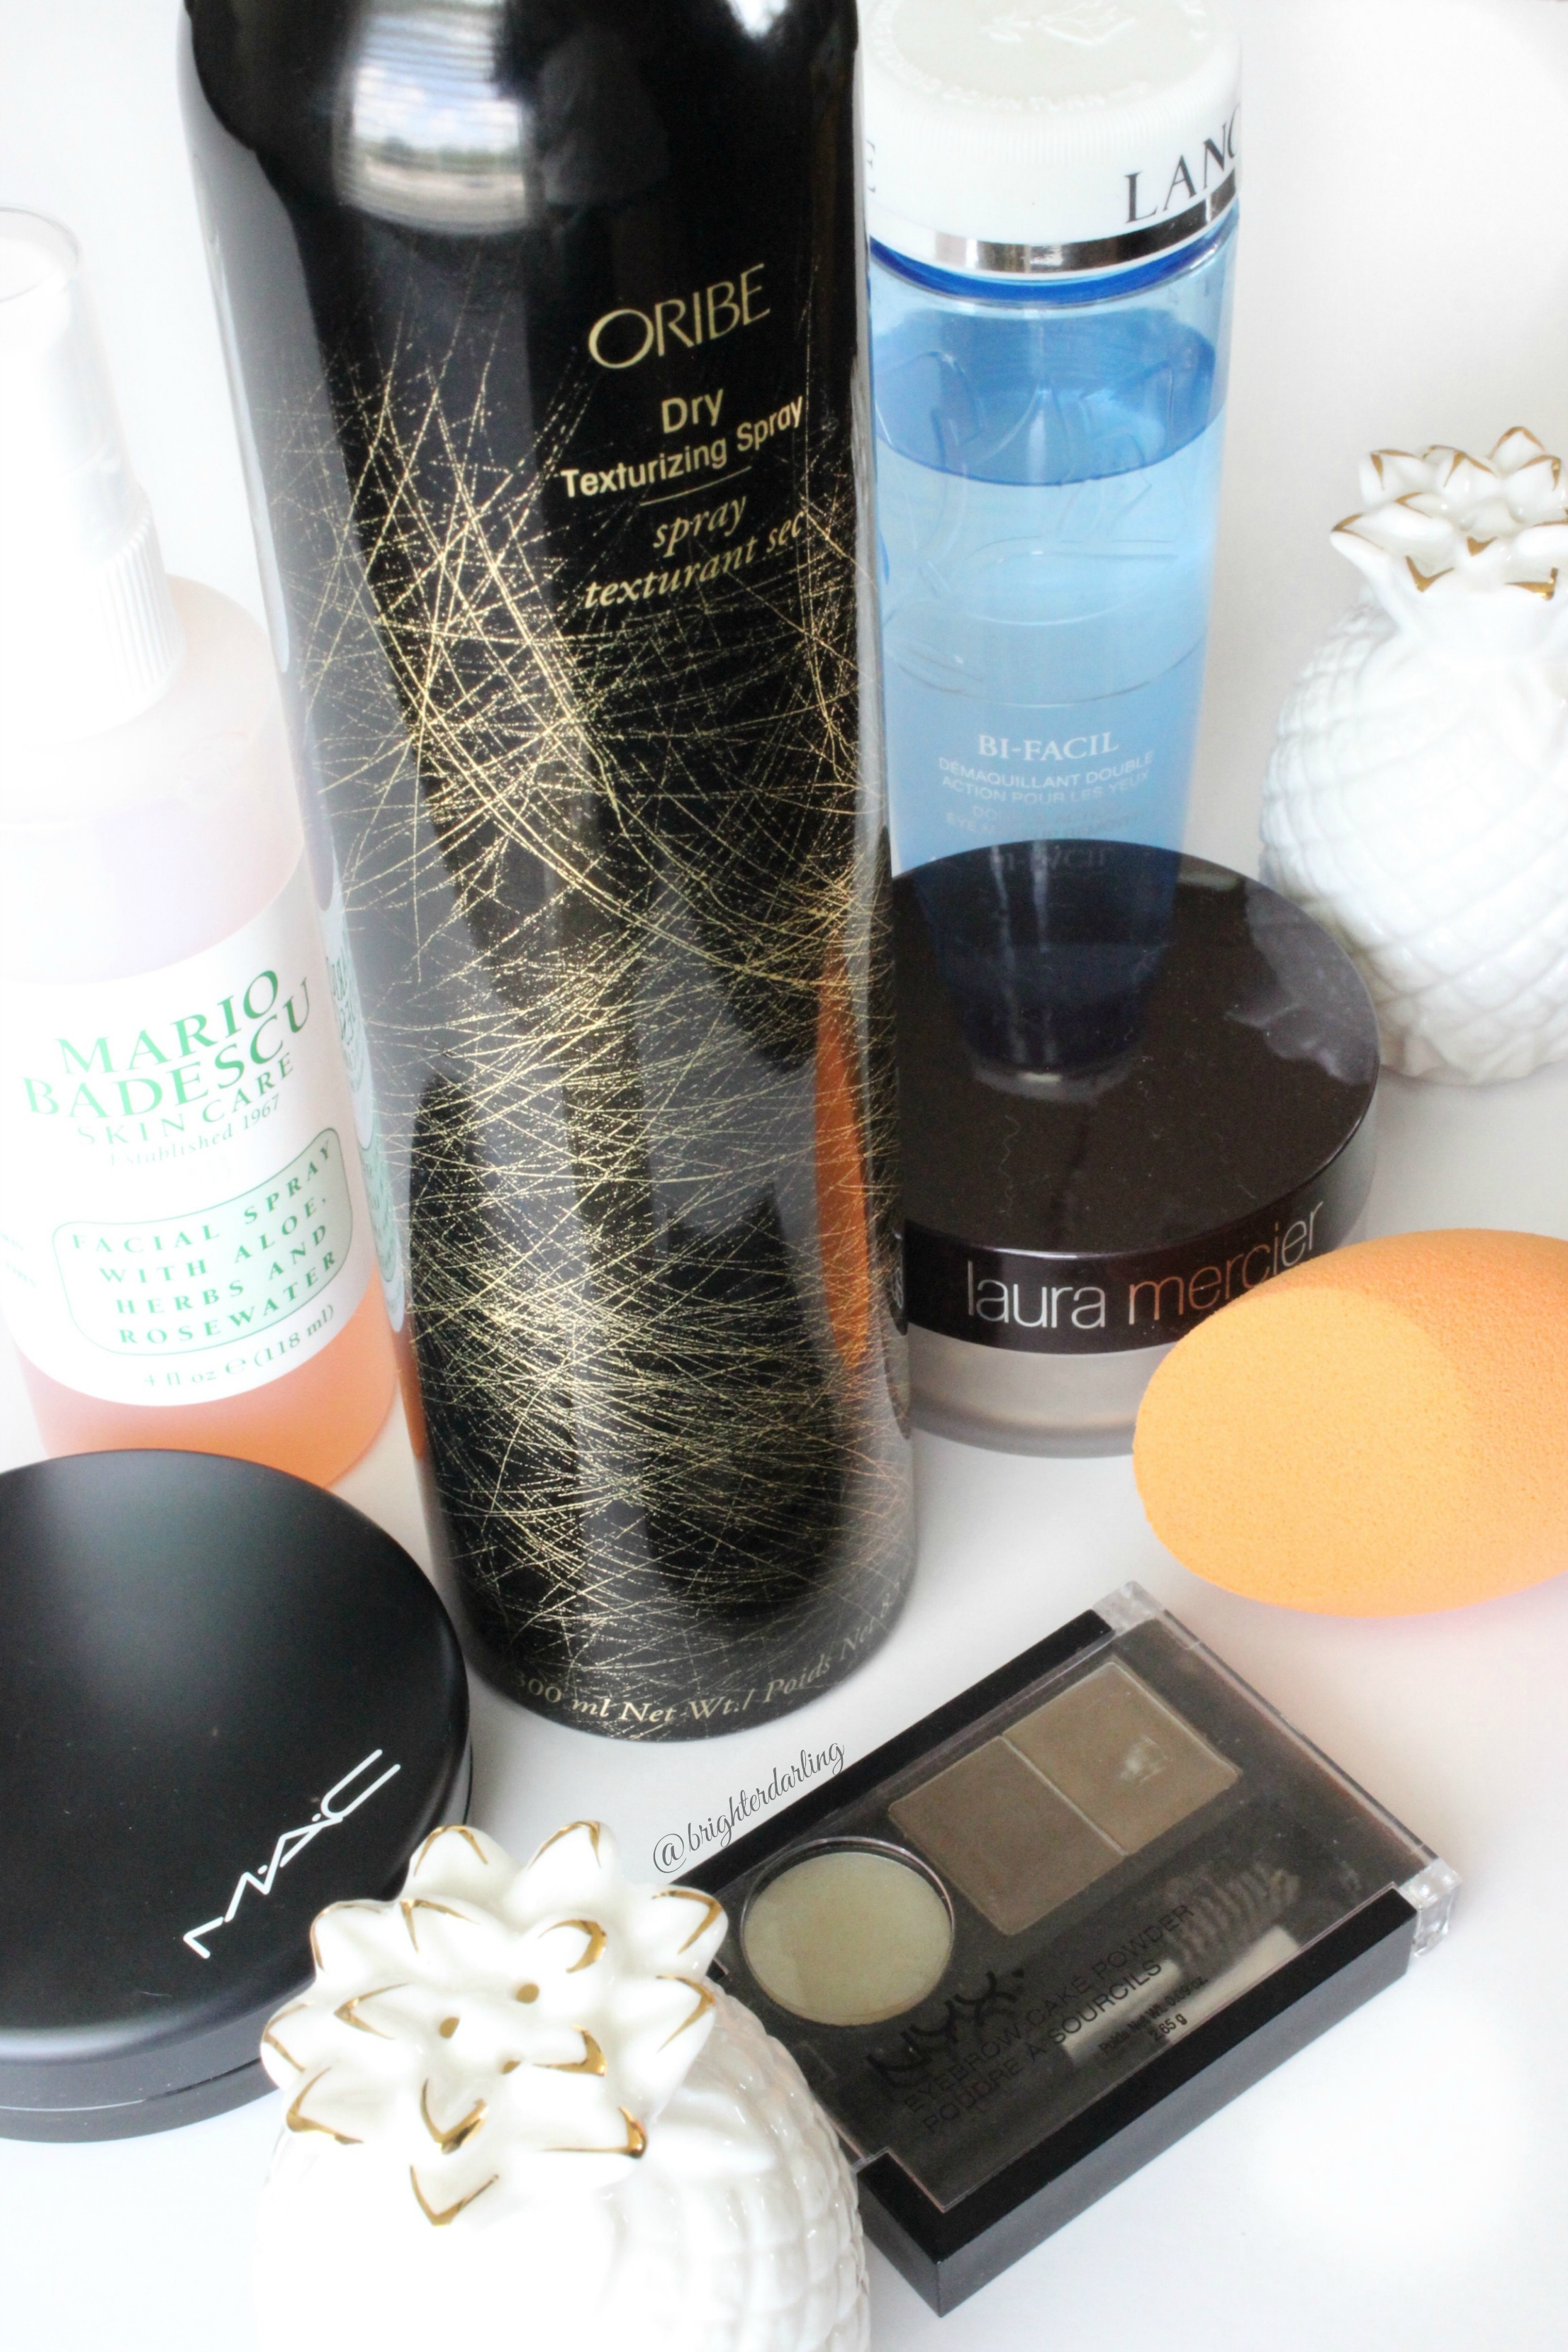 summer beauty haul | Mario Badescu Oribe MAC Laura Mercier NYX Real Techniques Lancome | Brighterdarling.com